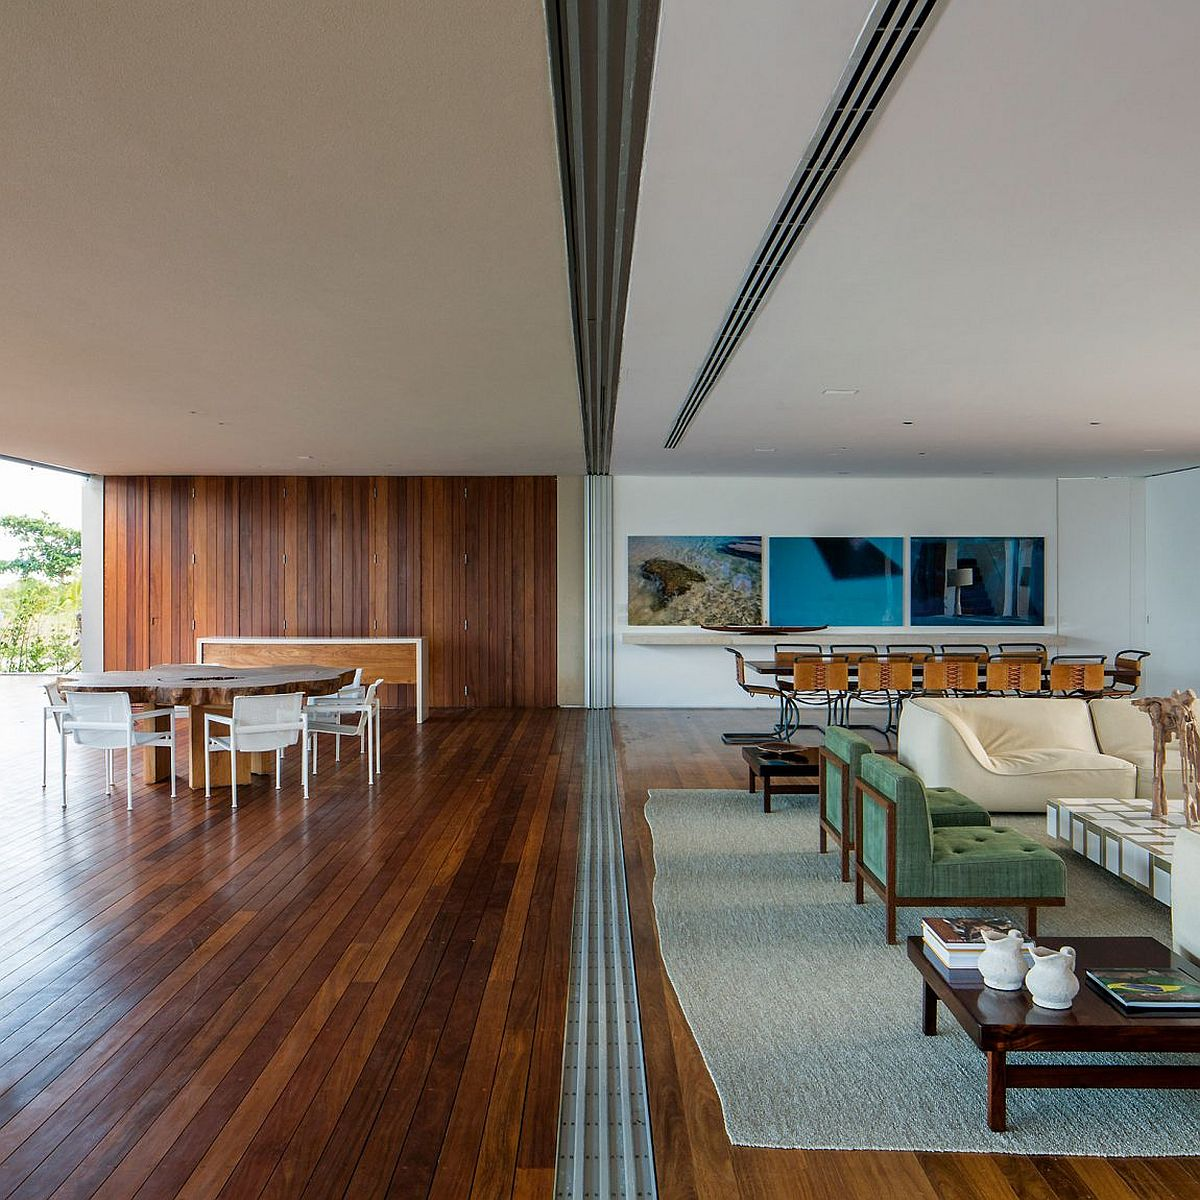 Sliding glass doors disappear into the walls at Casa TM